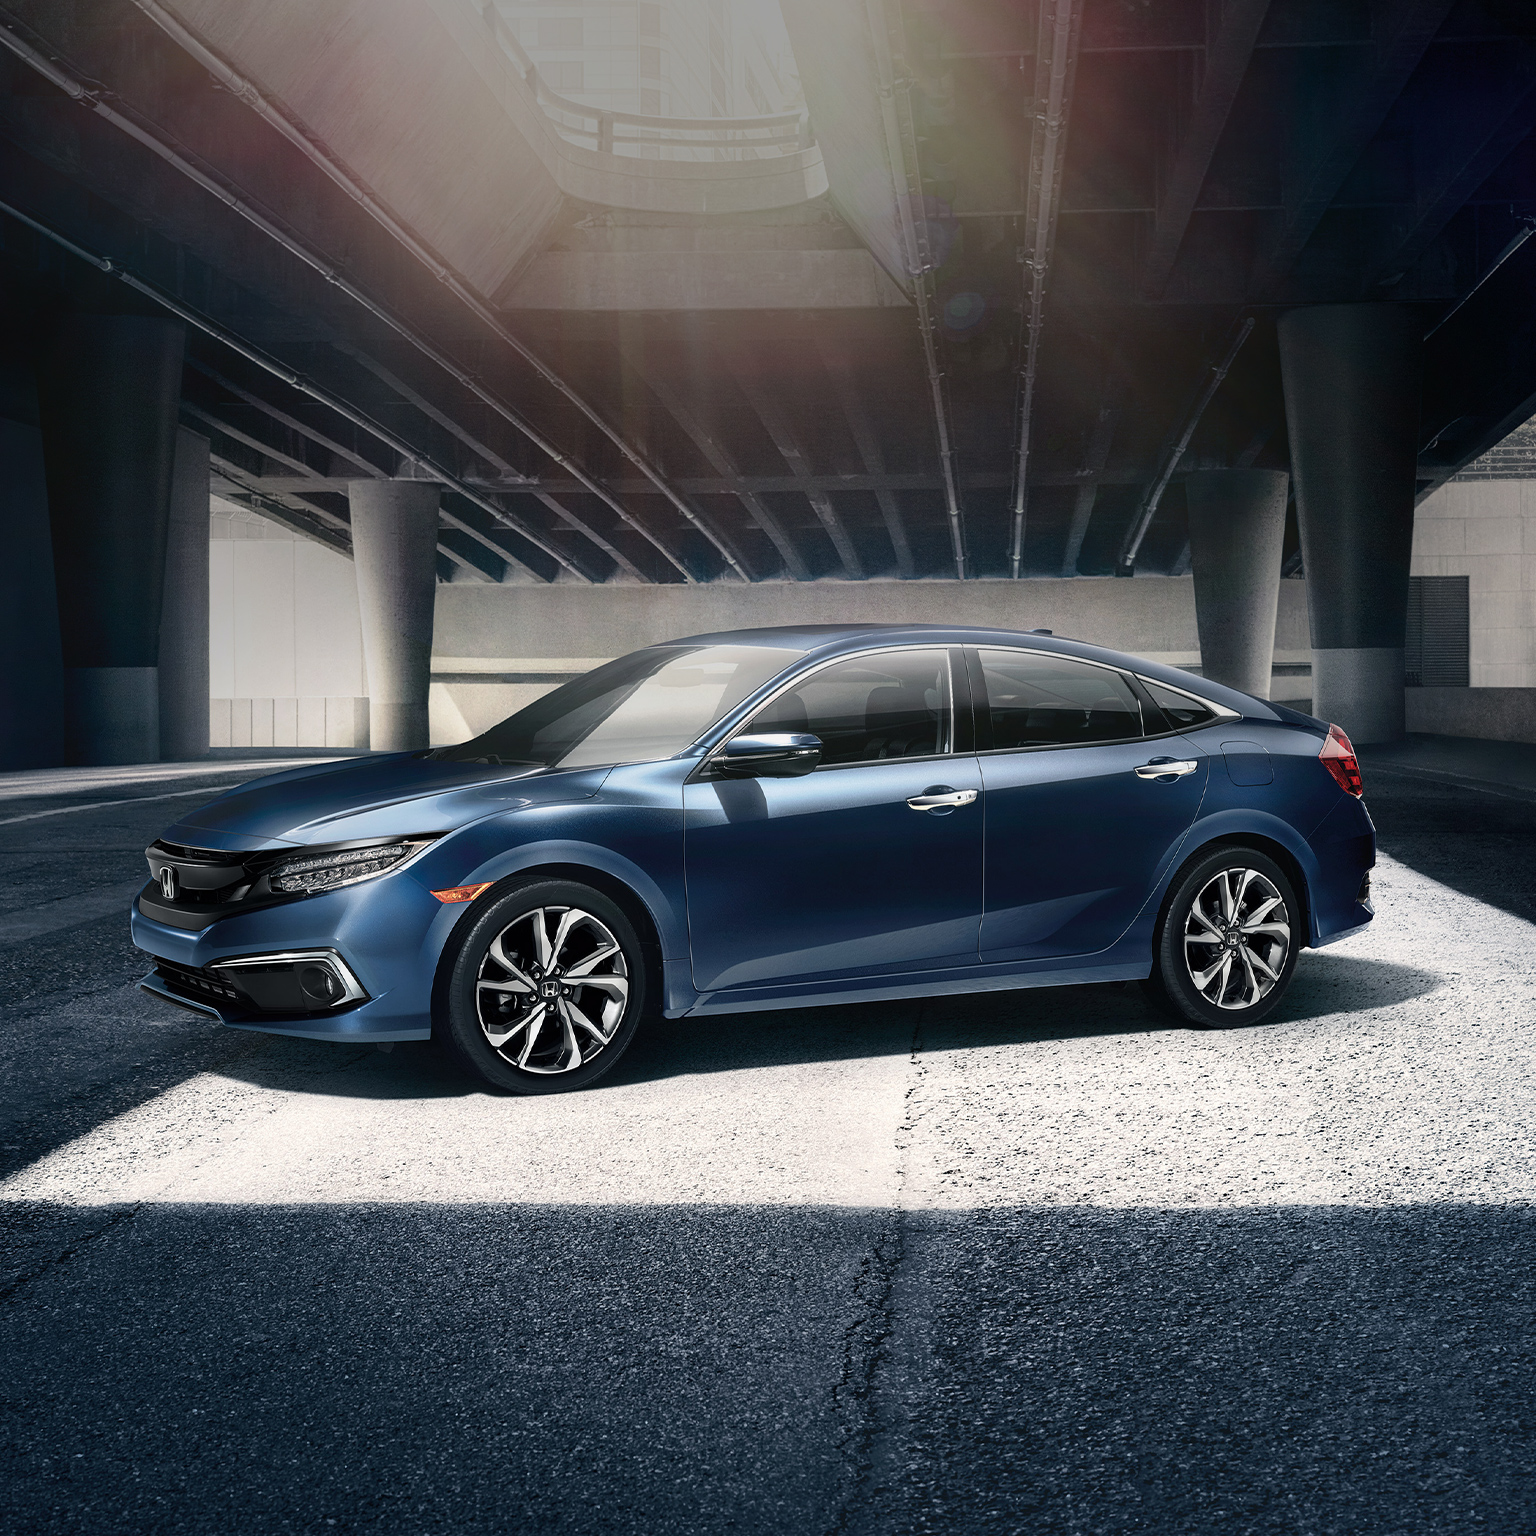 New 2020 Honda Civic for sale in Orlando, FL